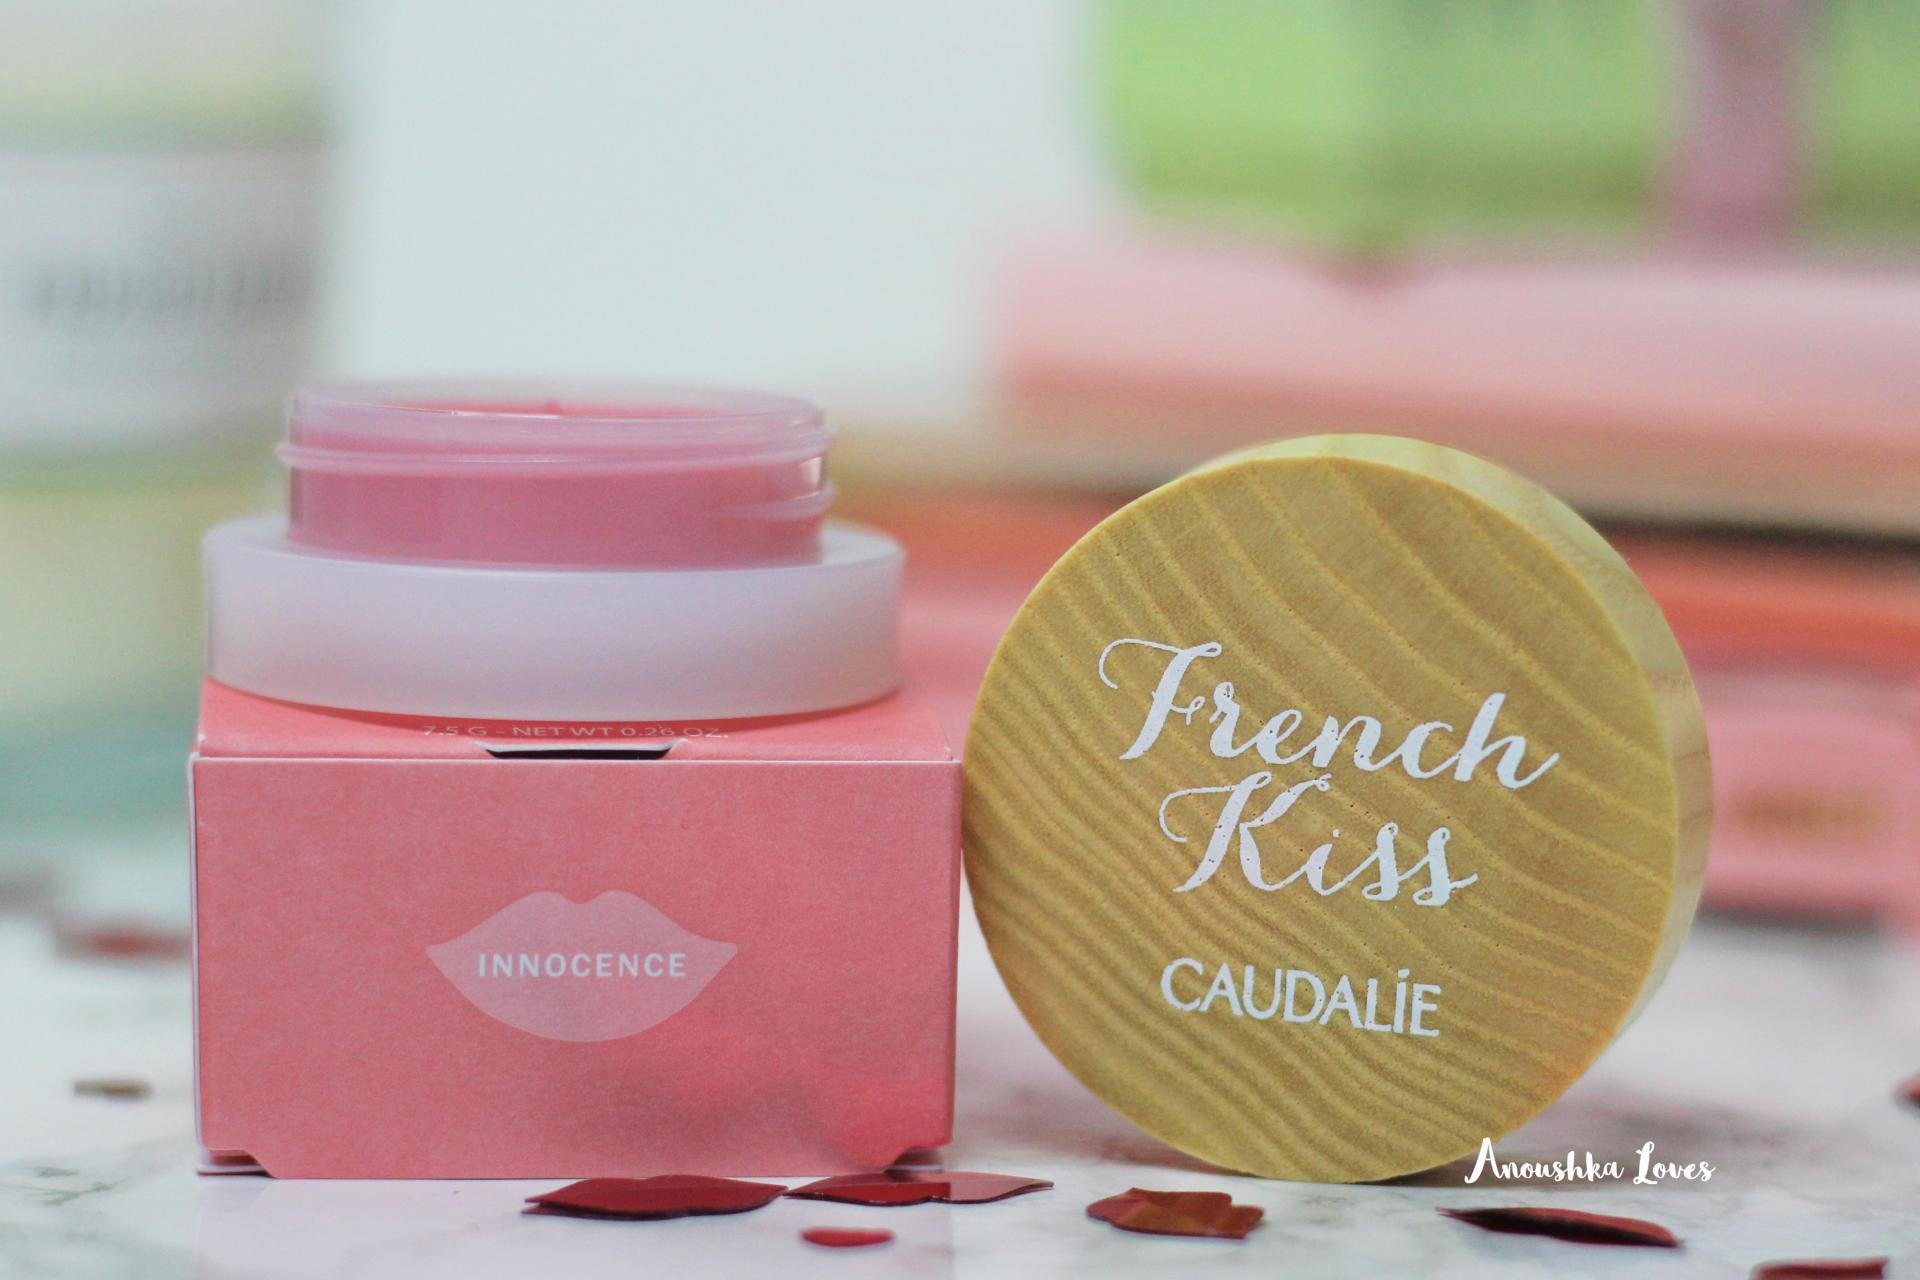 Caudalie French Kiss Treatment Balm